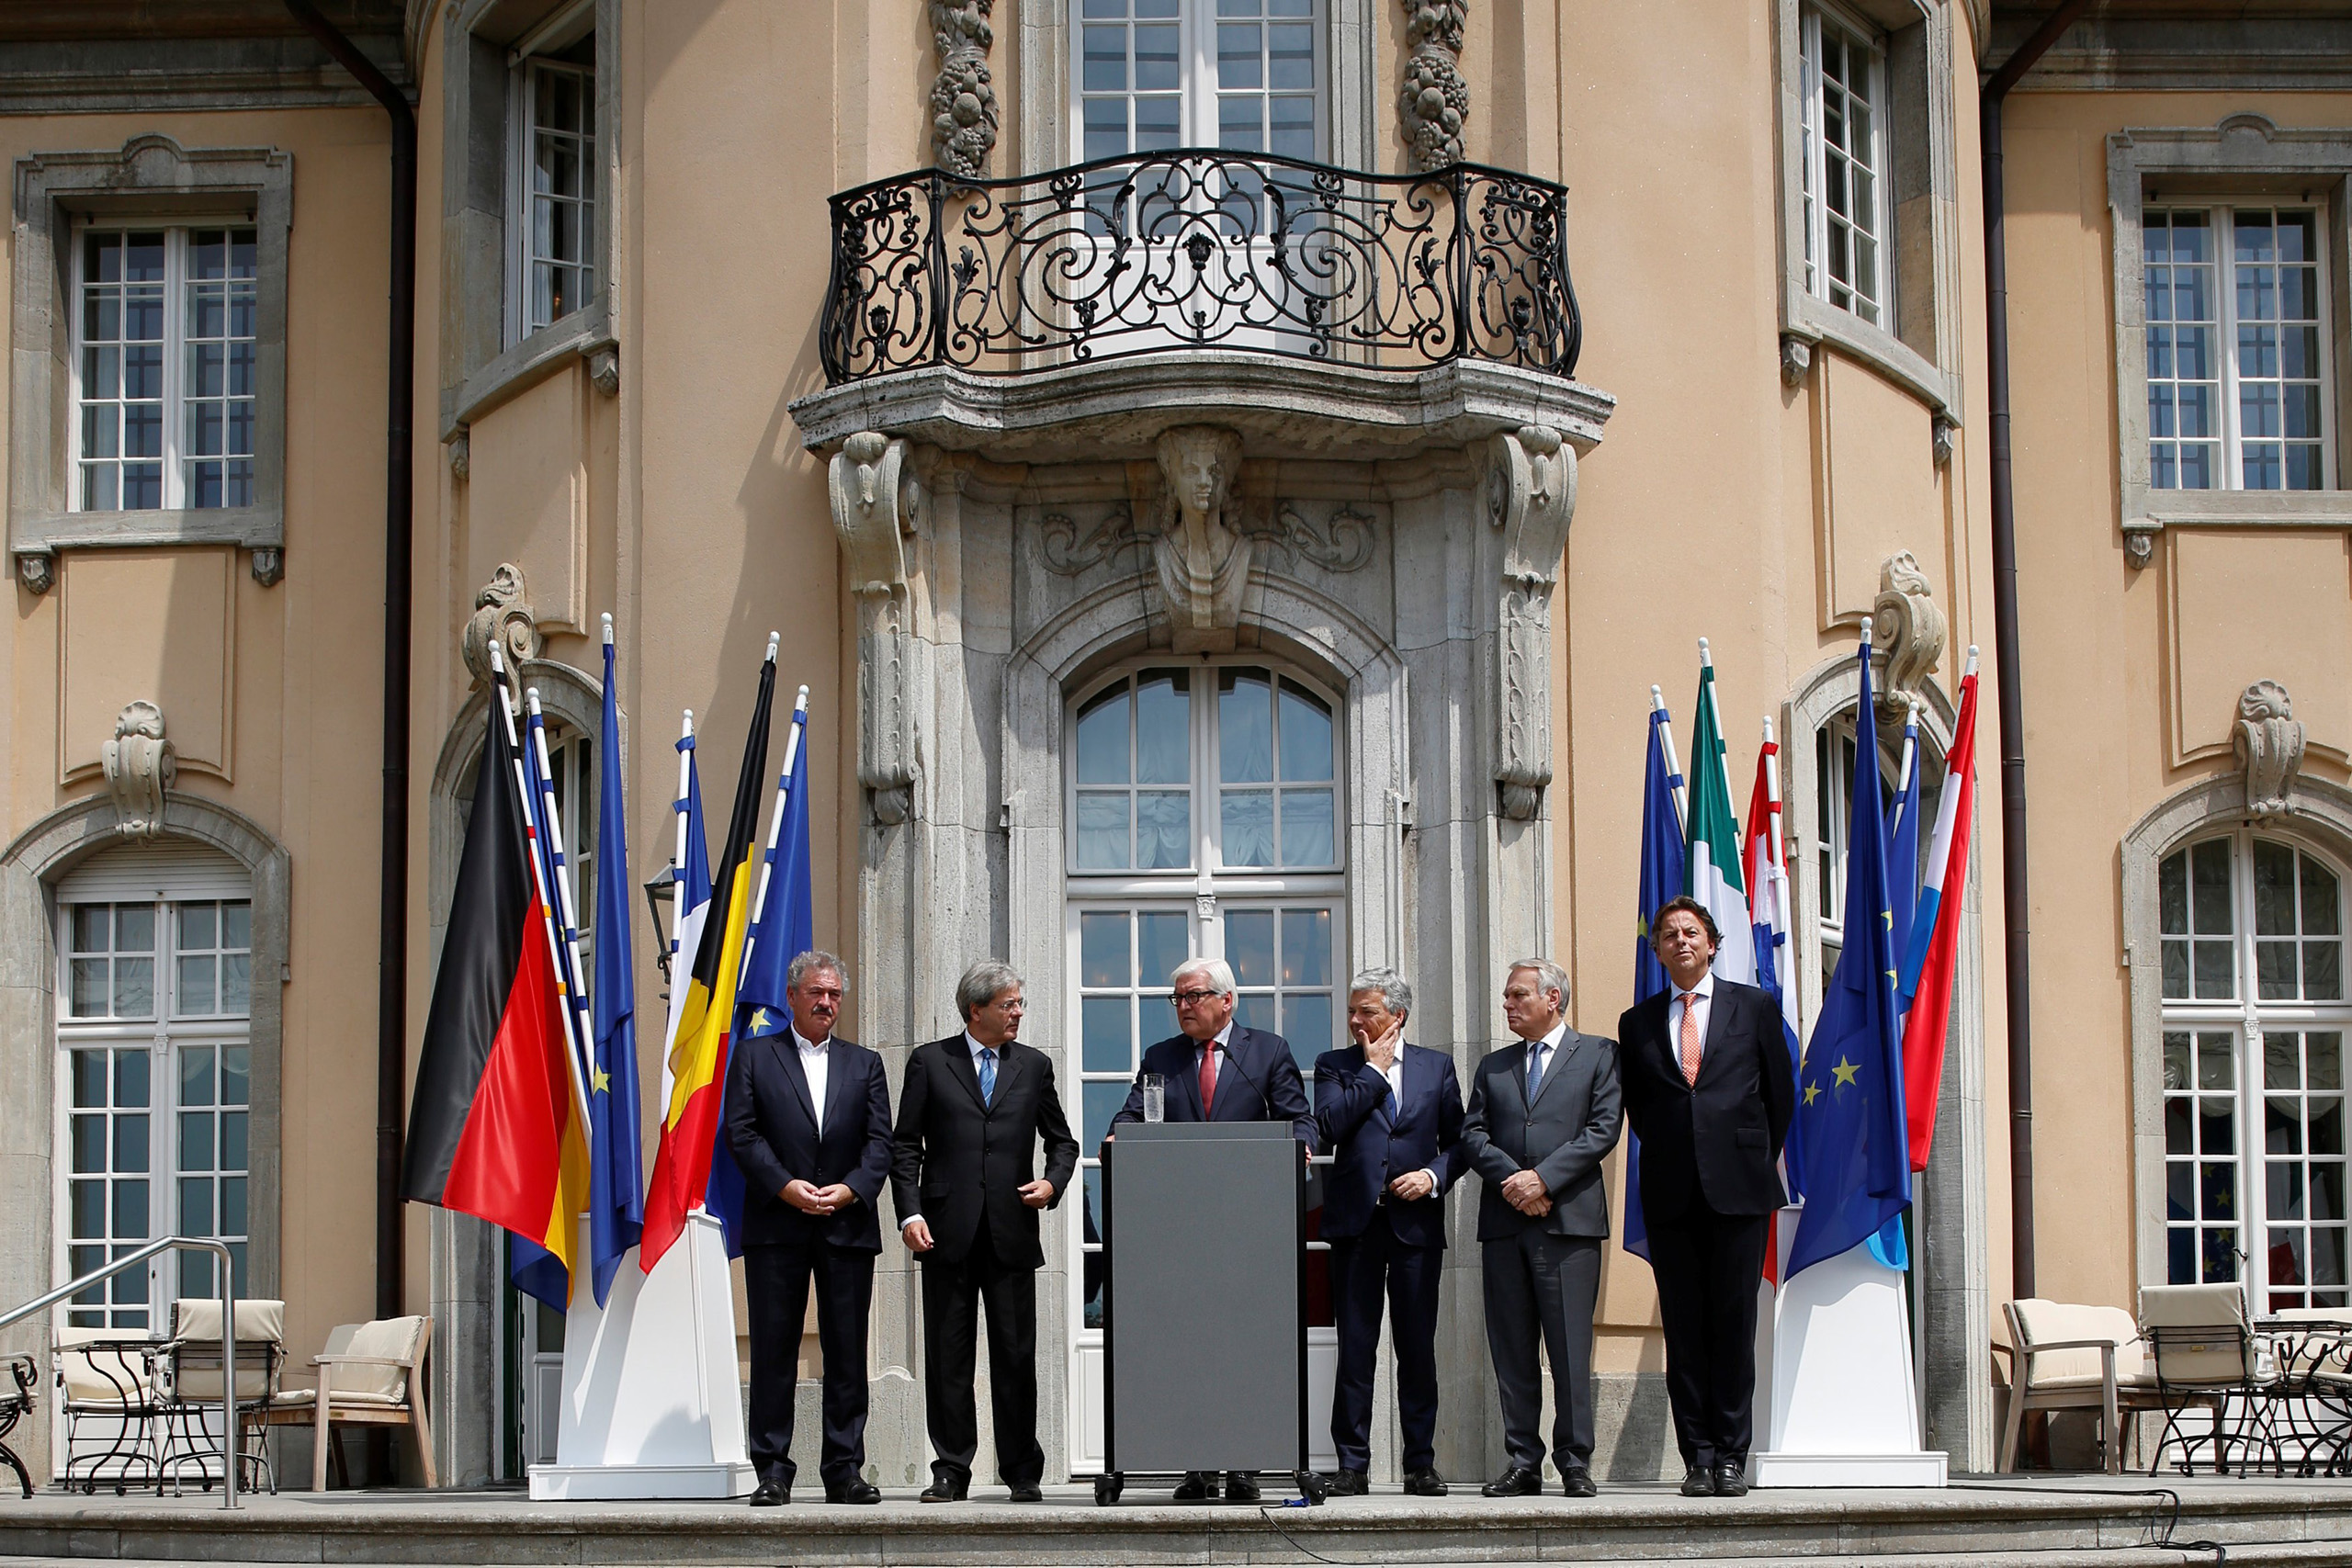 Luxembourg's Foreign Minister Jean Asselborn, Italian Foreign Minister Paolo Gentiloni, German Foreign Minister Frank-Walter Steinmeier, Belgian Foreign Minister Didier Reynders, French Foreign Minister Jean-Marc Ayrault and Dutch Foreign Minister Bert Koenders (L-R) attend a press conference after a foreign minister meeting of the EU founding members in Berlin on June 25, 2016.